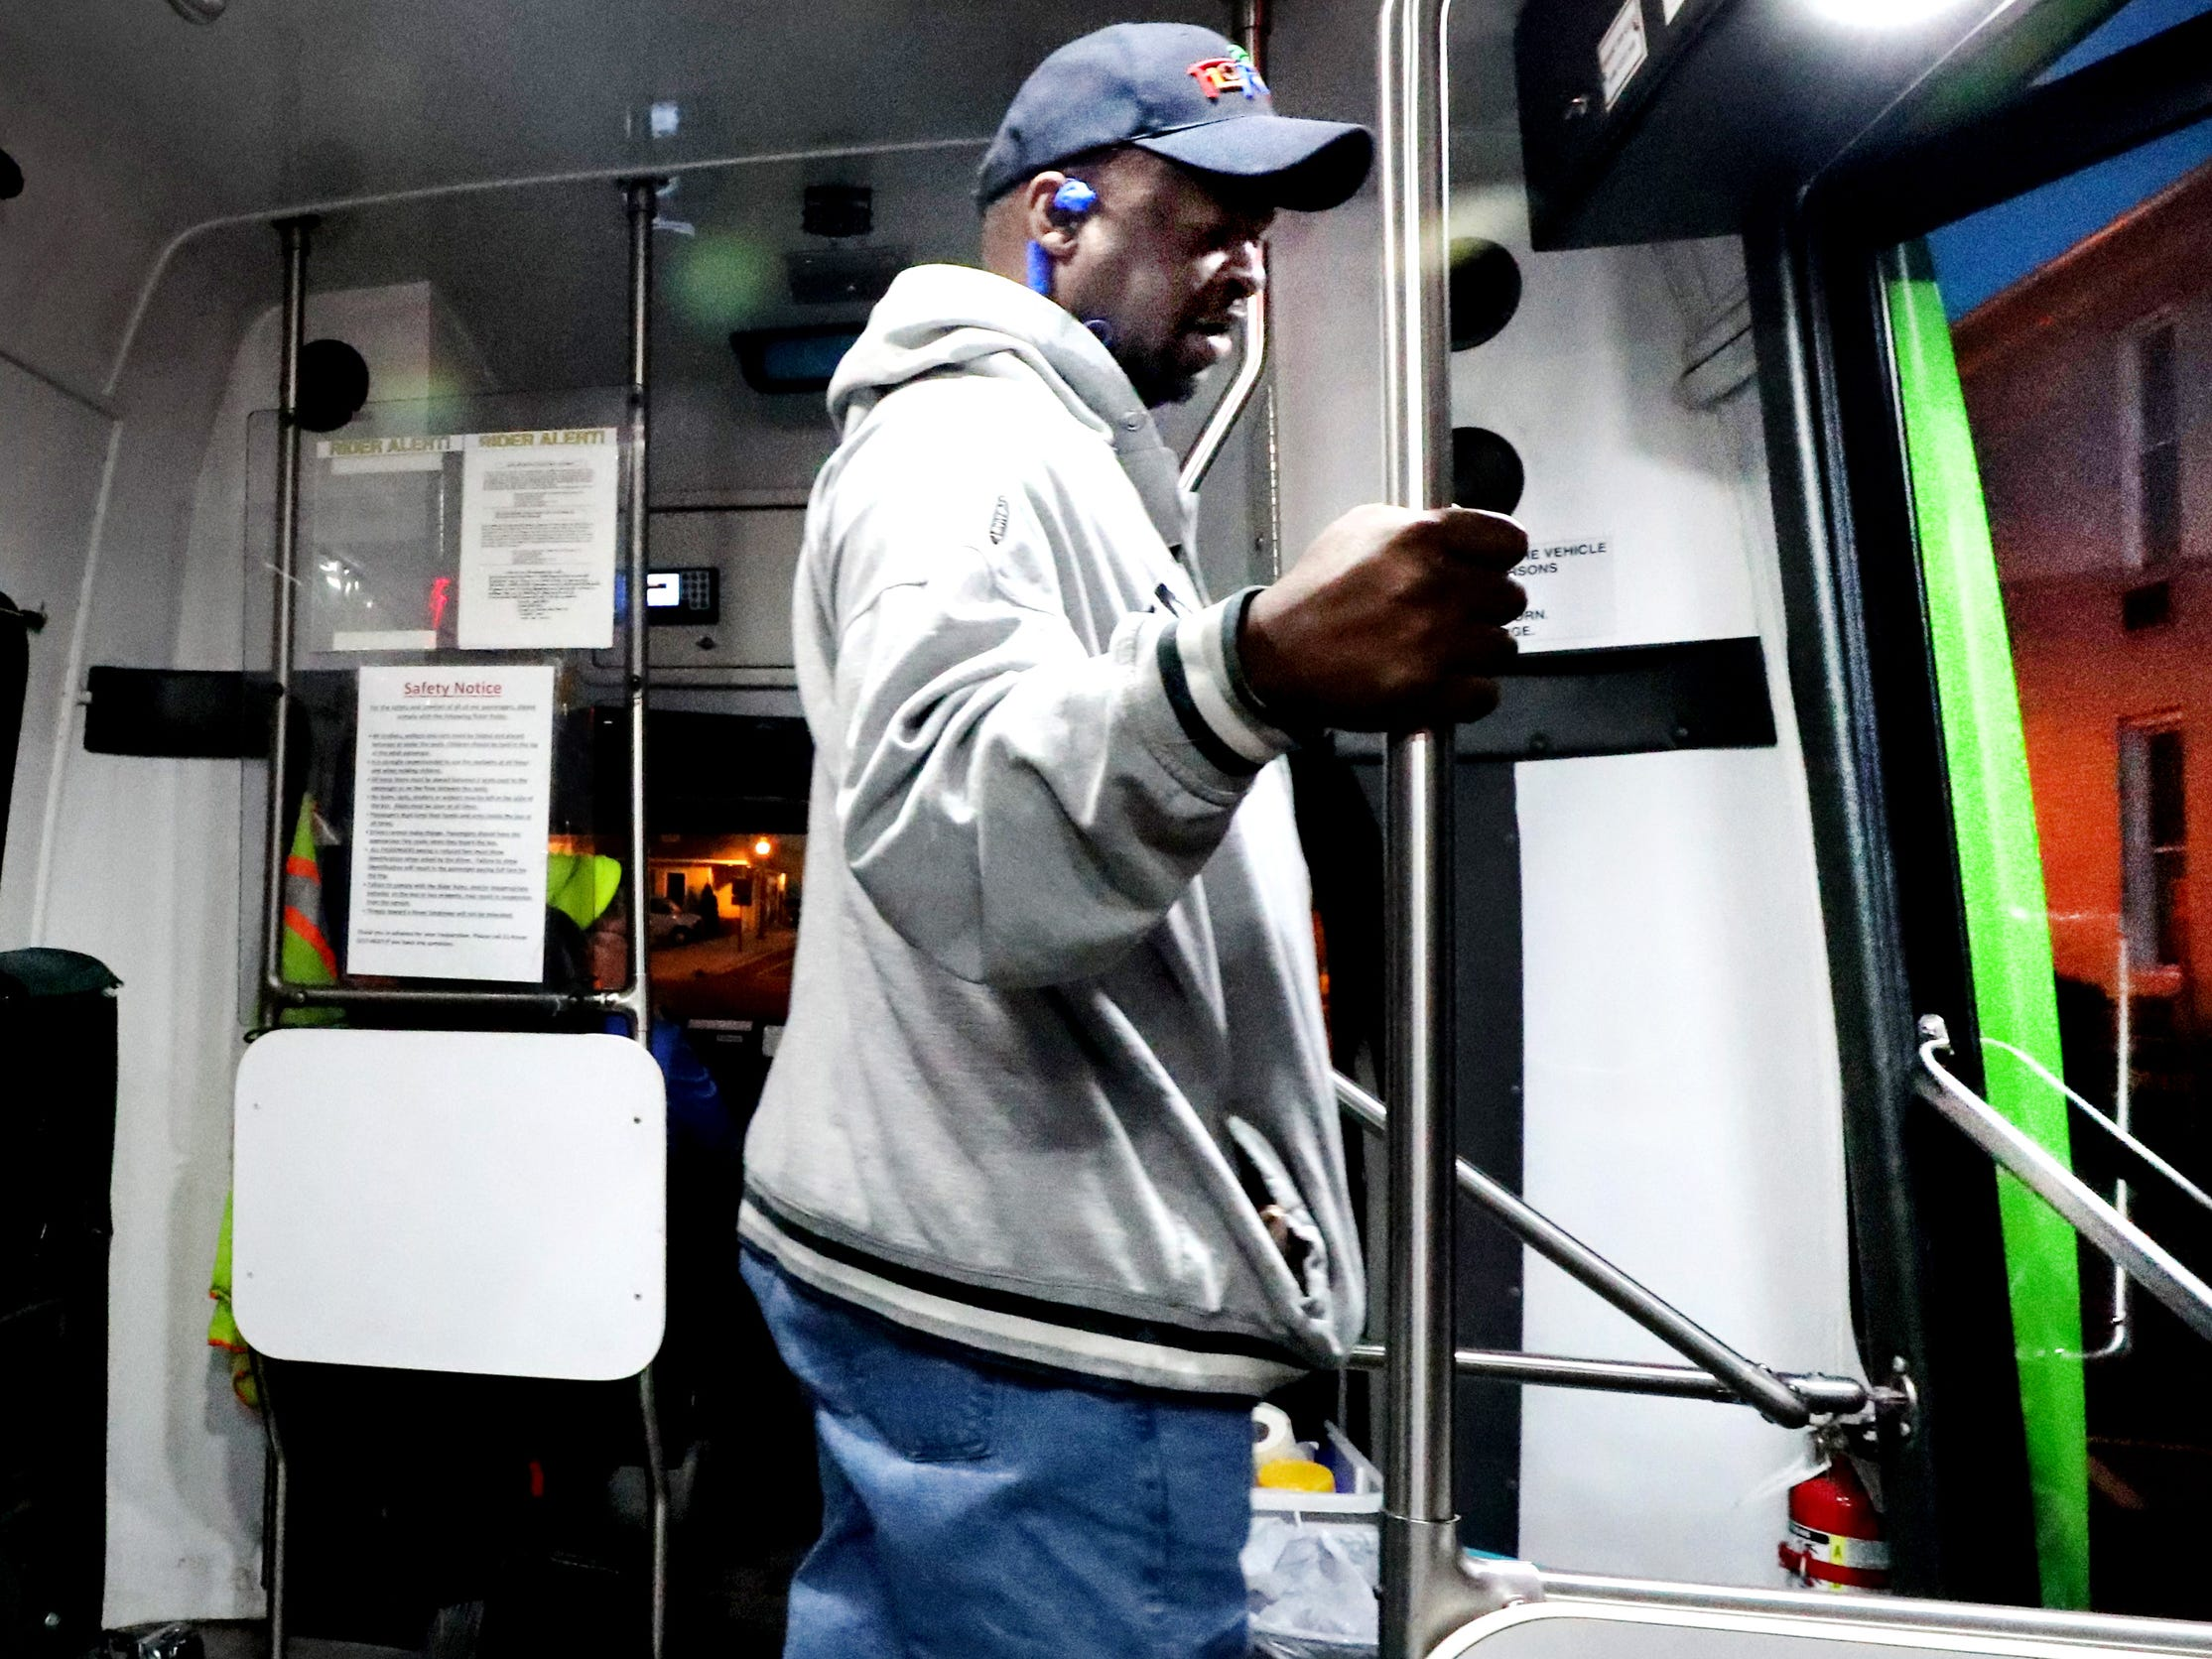 Joel Hicks gets off the 6 am bus as he goes to work at City Cafe in downtown Murfreesboro, on Tuesday, March 19, 2019. Many people rely on the Murfreesboro bus service Rover to get back and forth to their jobs.